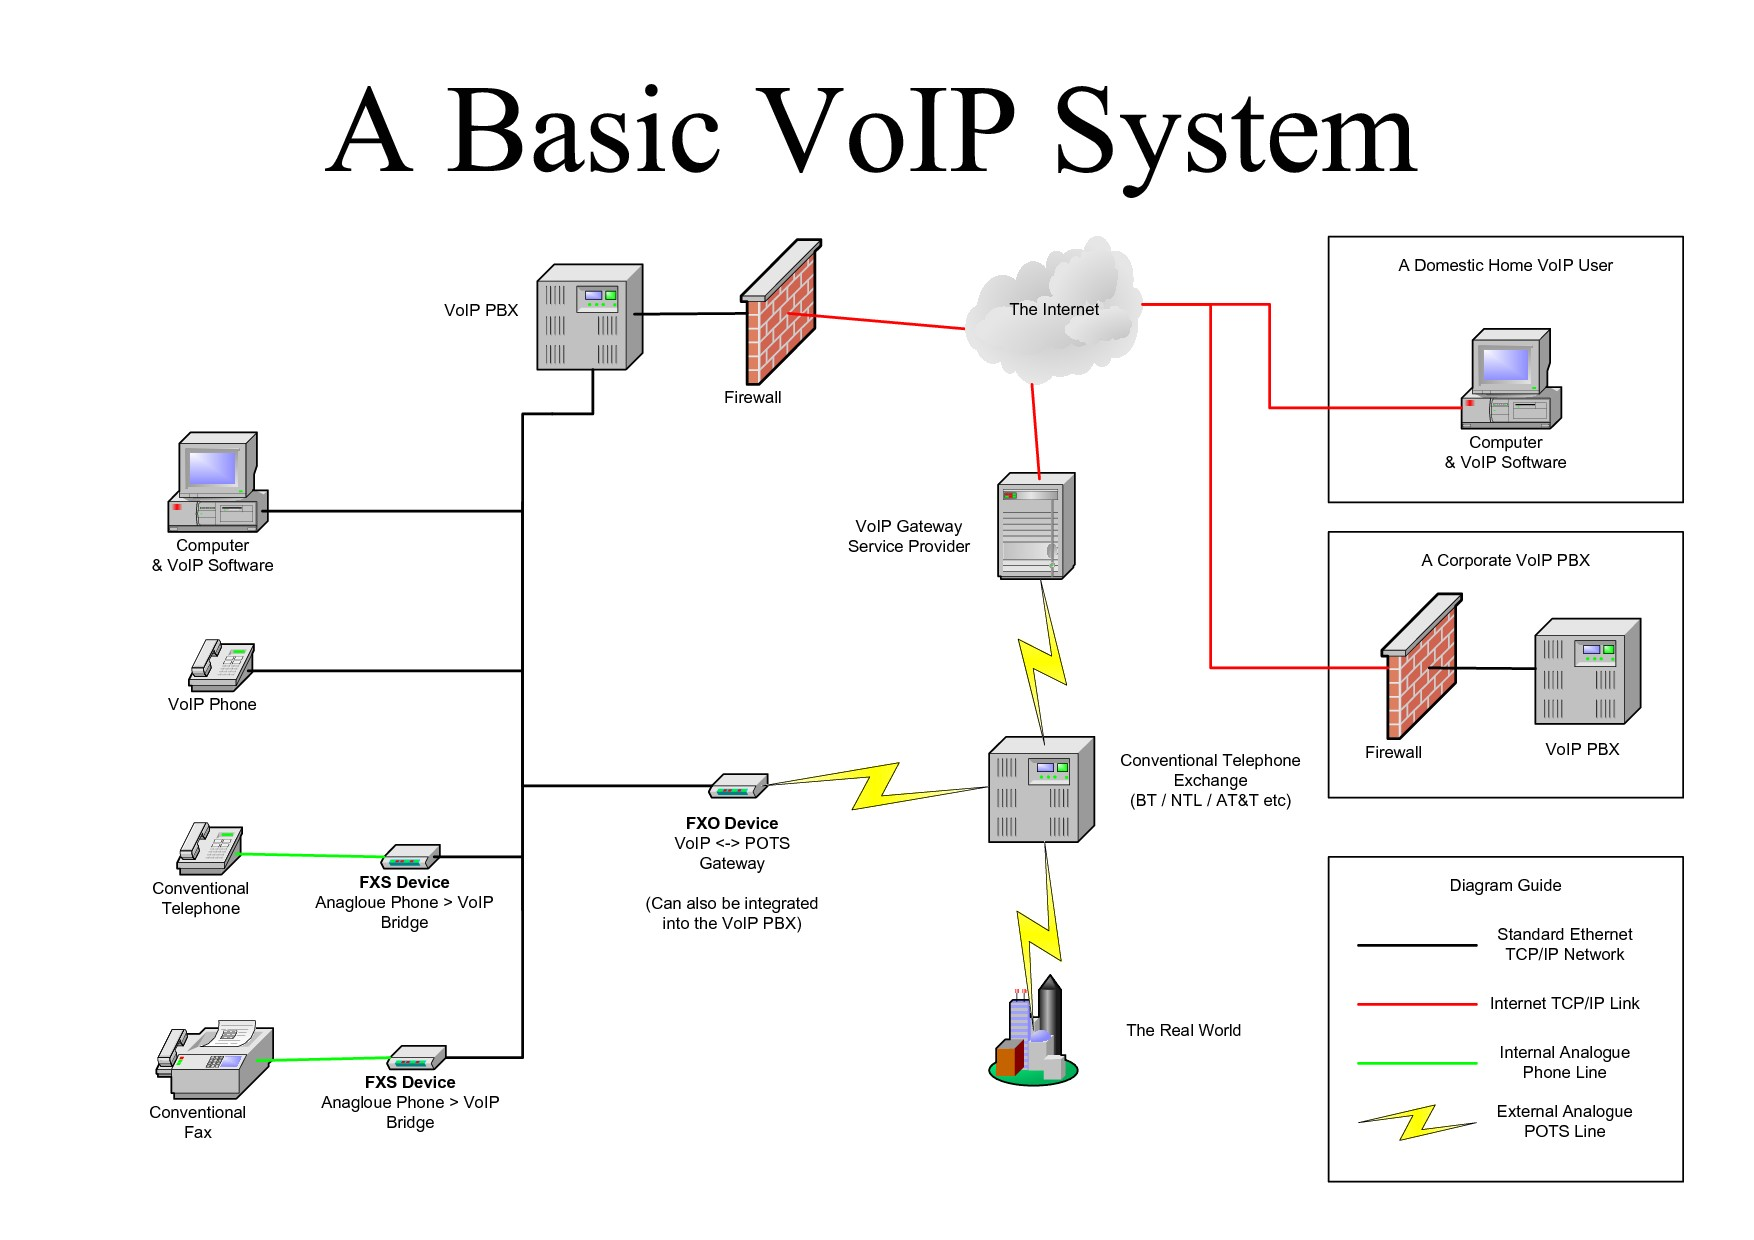 Voip Telephone Jack Wiring Library Of Diagrams Modular Phone Diagram Automotive U2022 Rh Nfluencer Co Wall